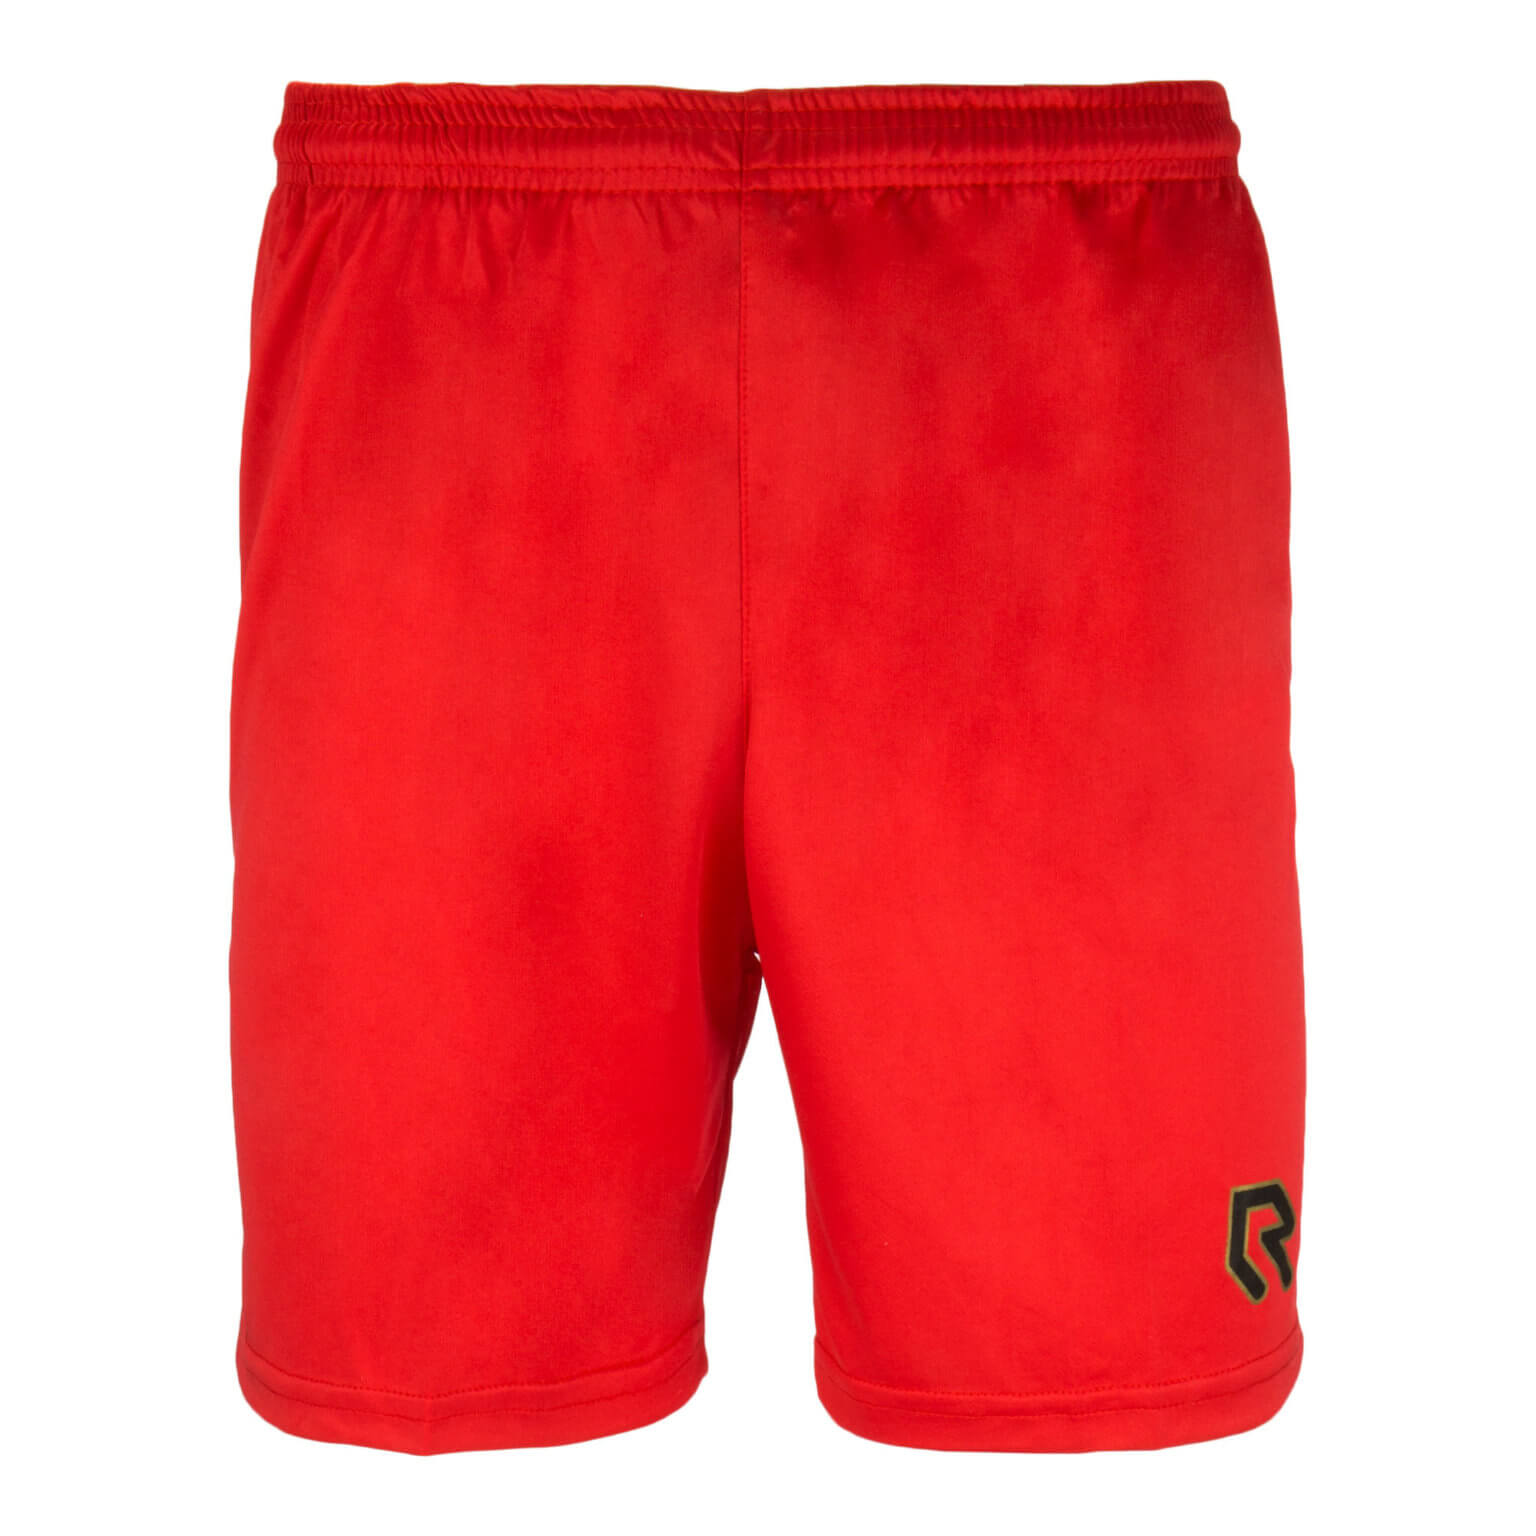 Robey Competitor Short - Red